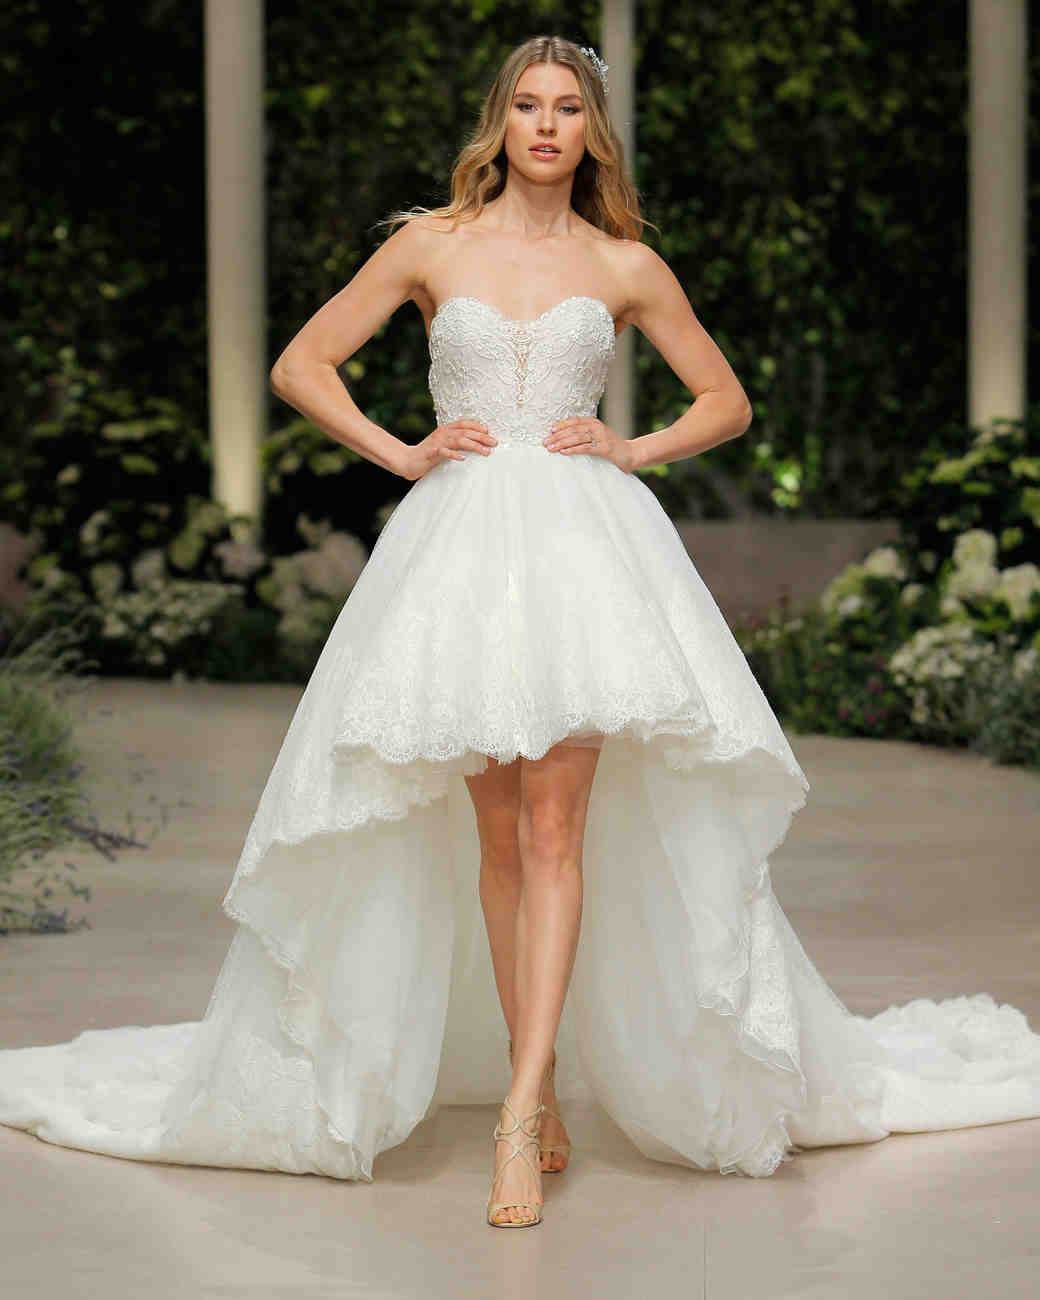 pronovias wedding dress spring 2019 sweetheart sleeveless high-low